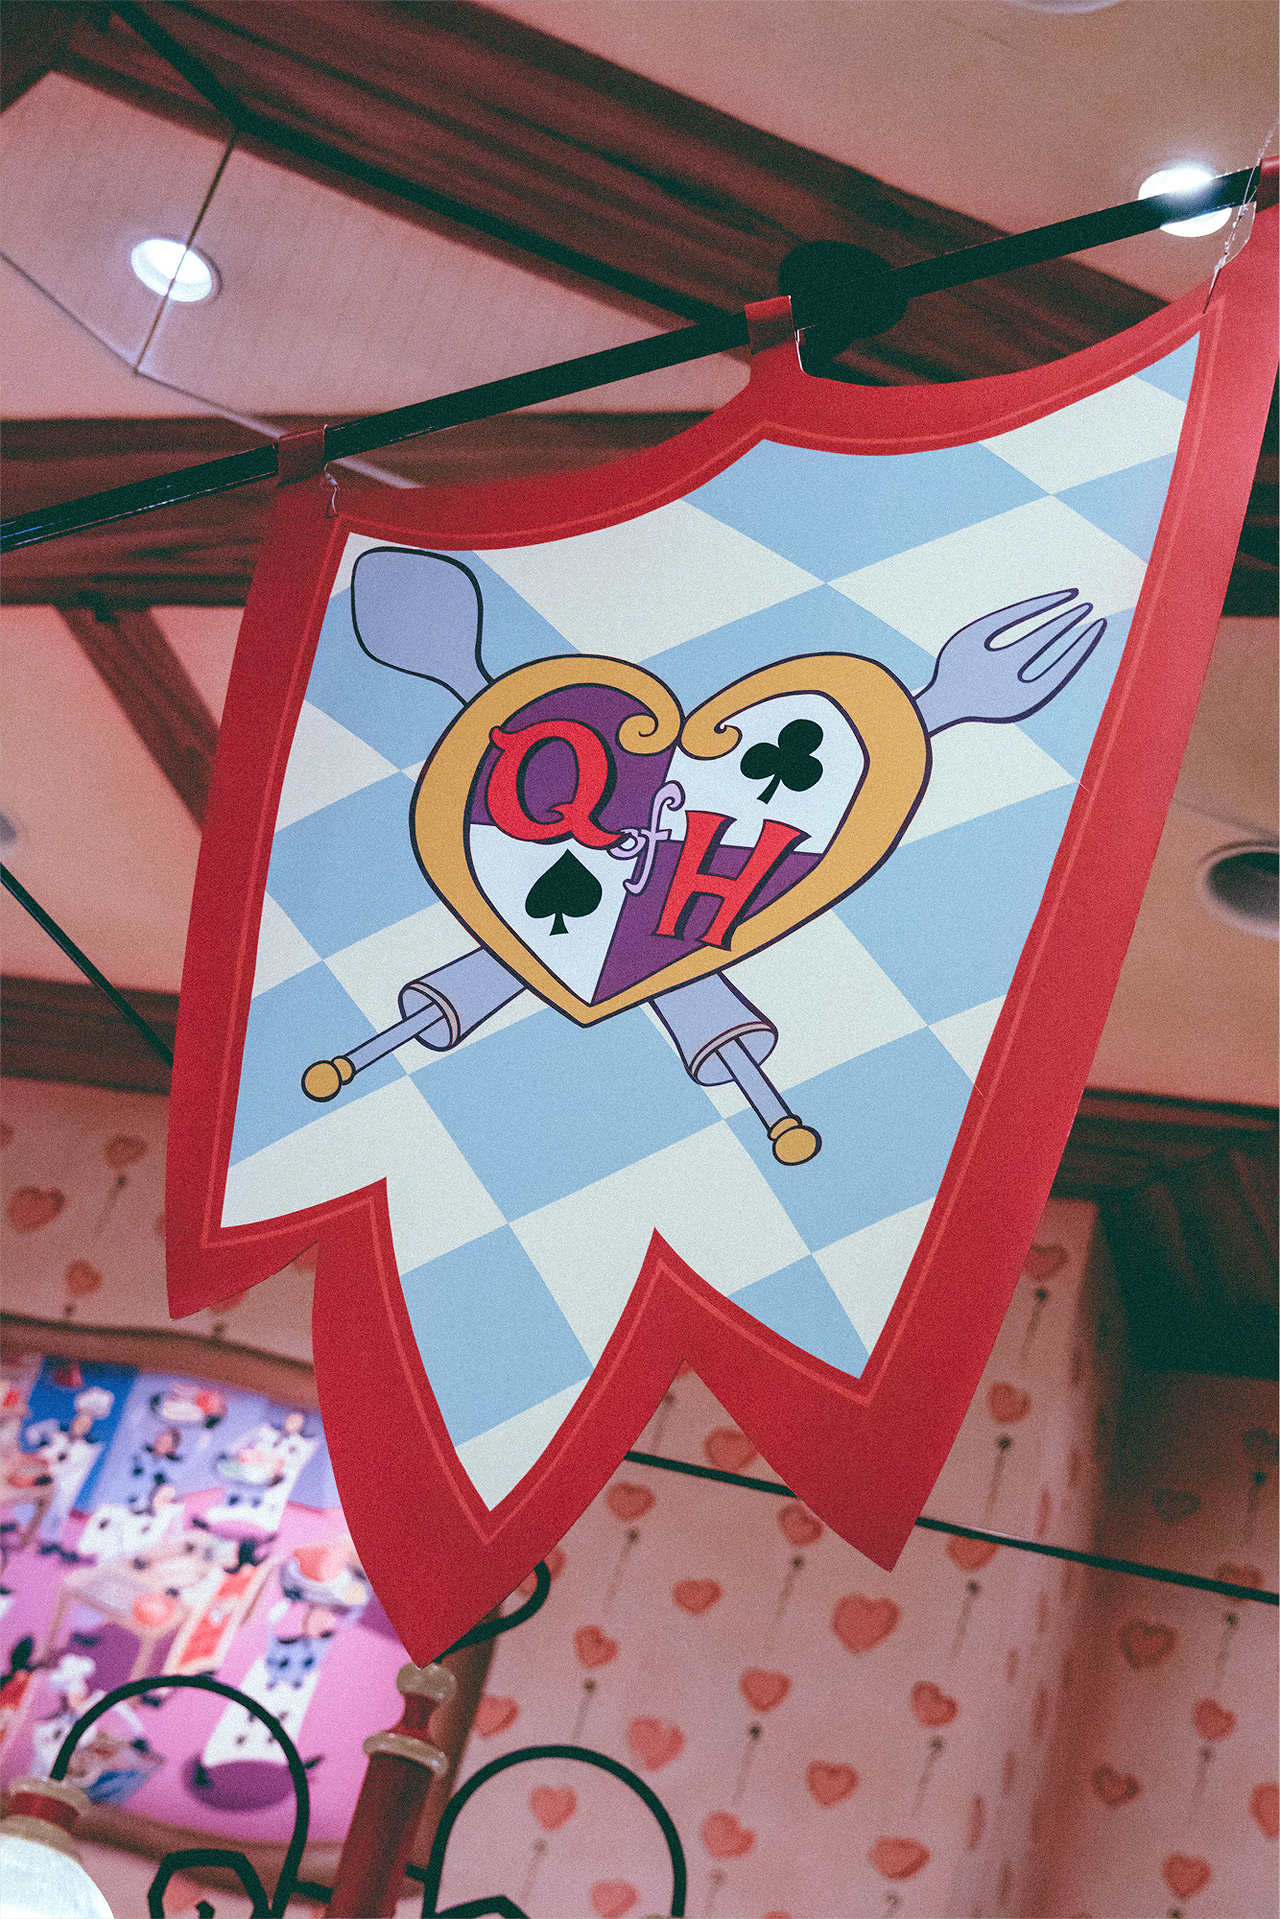 Speaking of royalty (and food), we headed over to Fantasyland for lunch at the Queen of Hearts Banquet Hall.